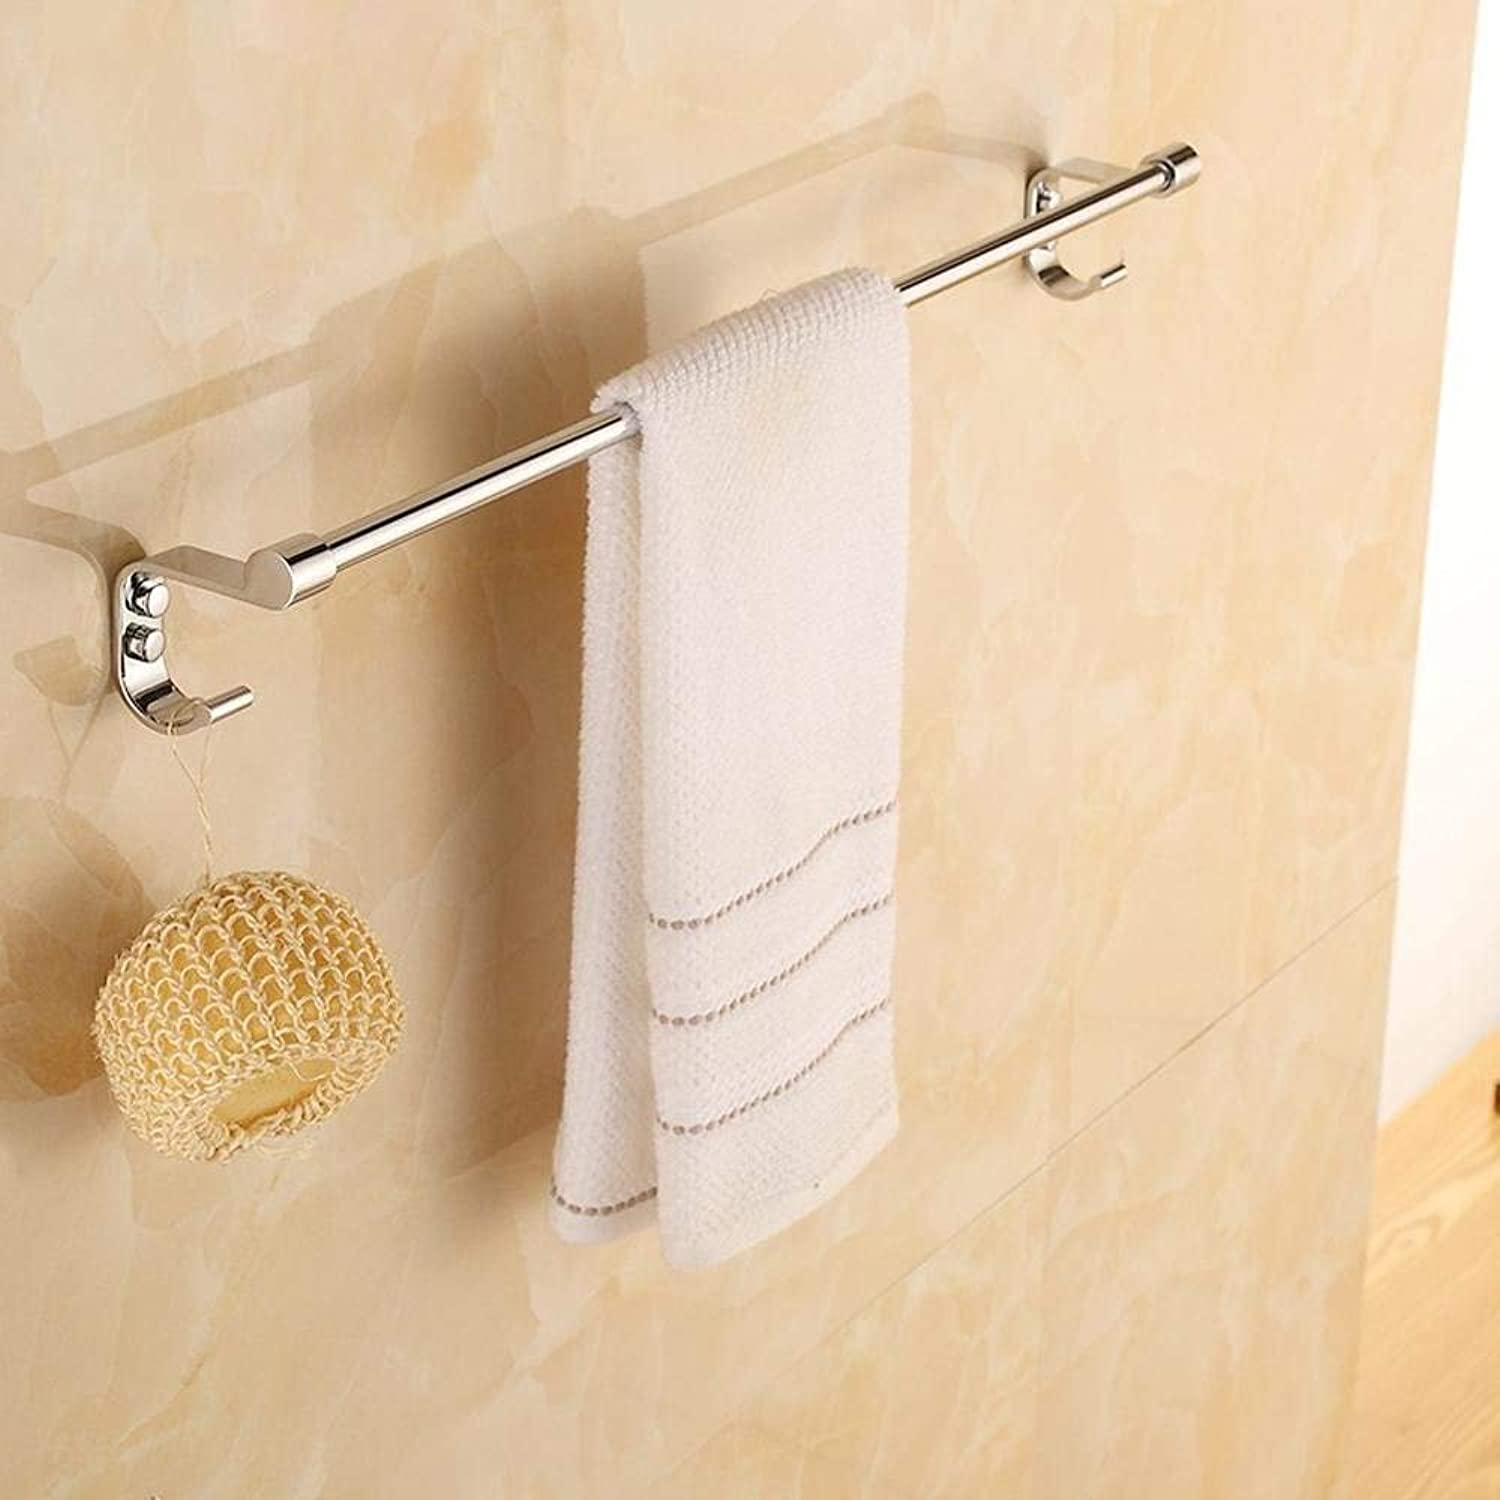 The Stainless Steel, The only bar, Bathroom, Dry-Towels Equipment Accessories 5924-40cm Long